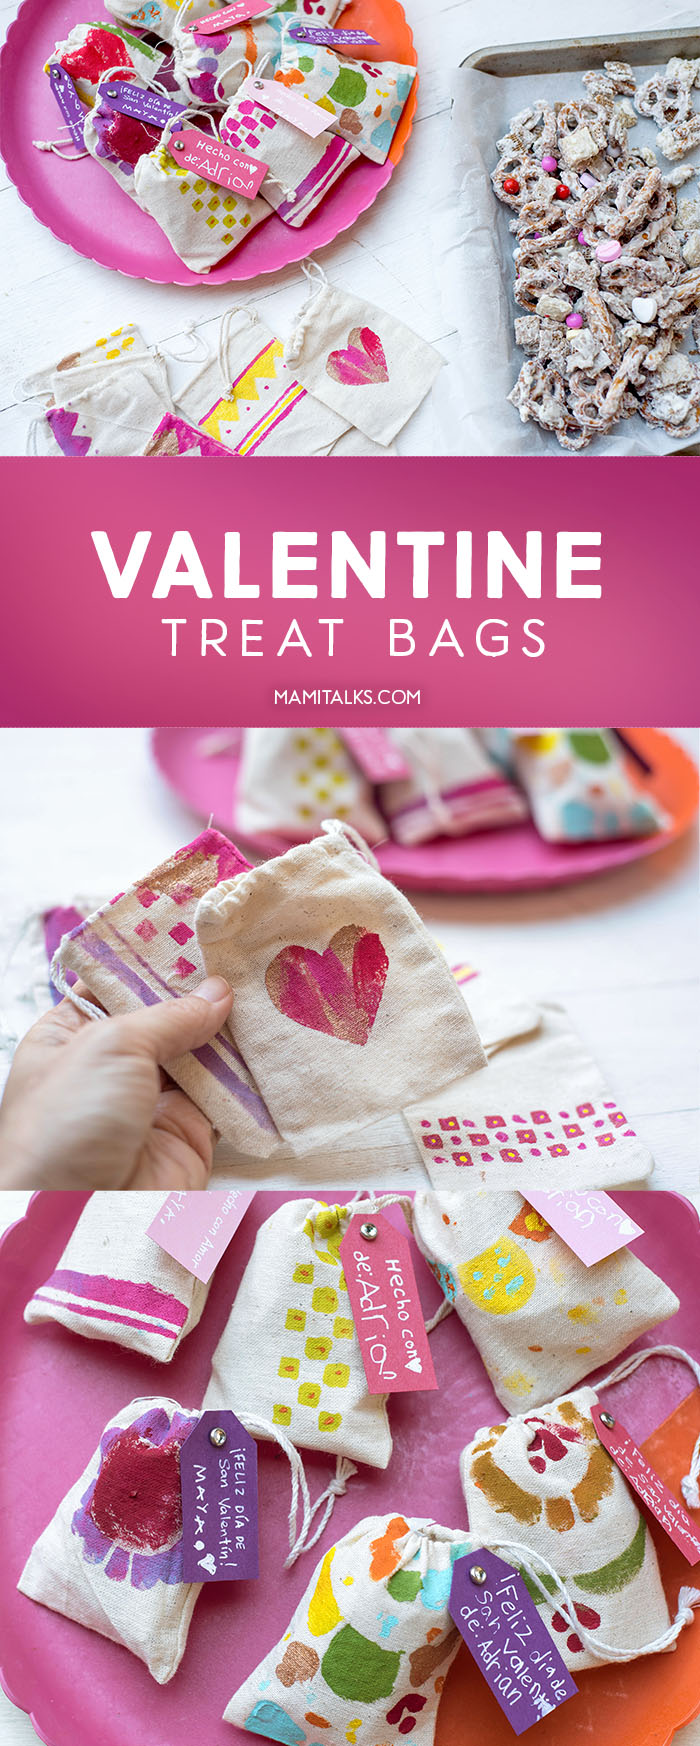 Valentine treat bags. -MamiTalks.com